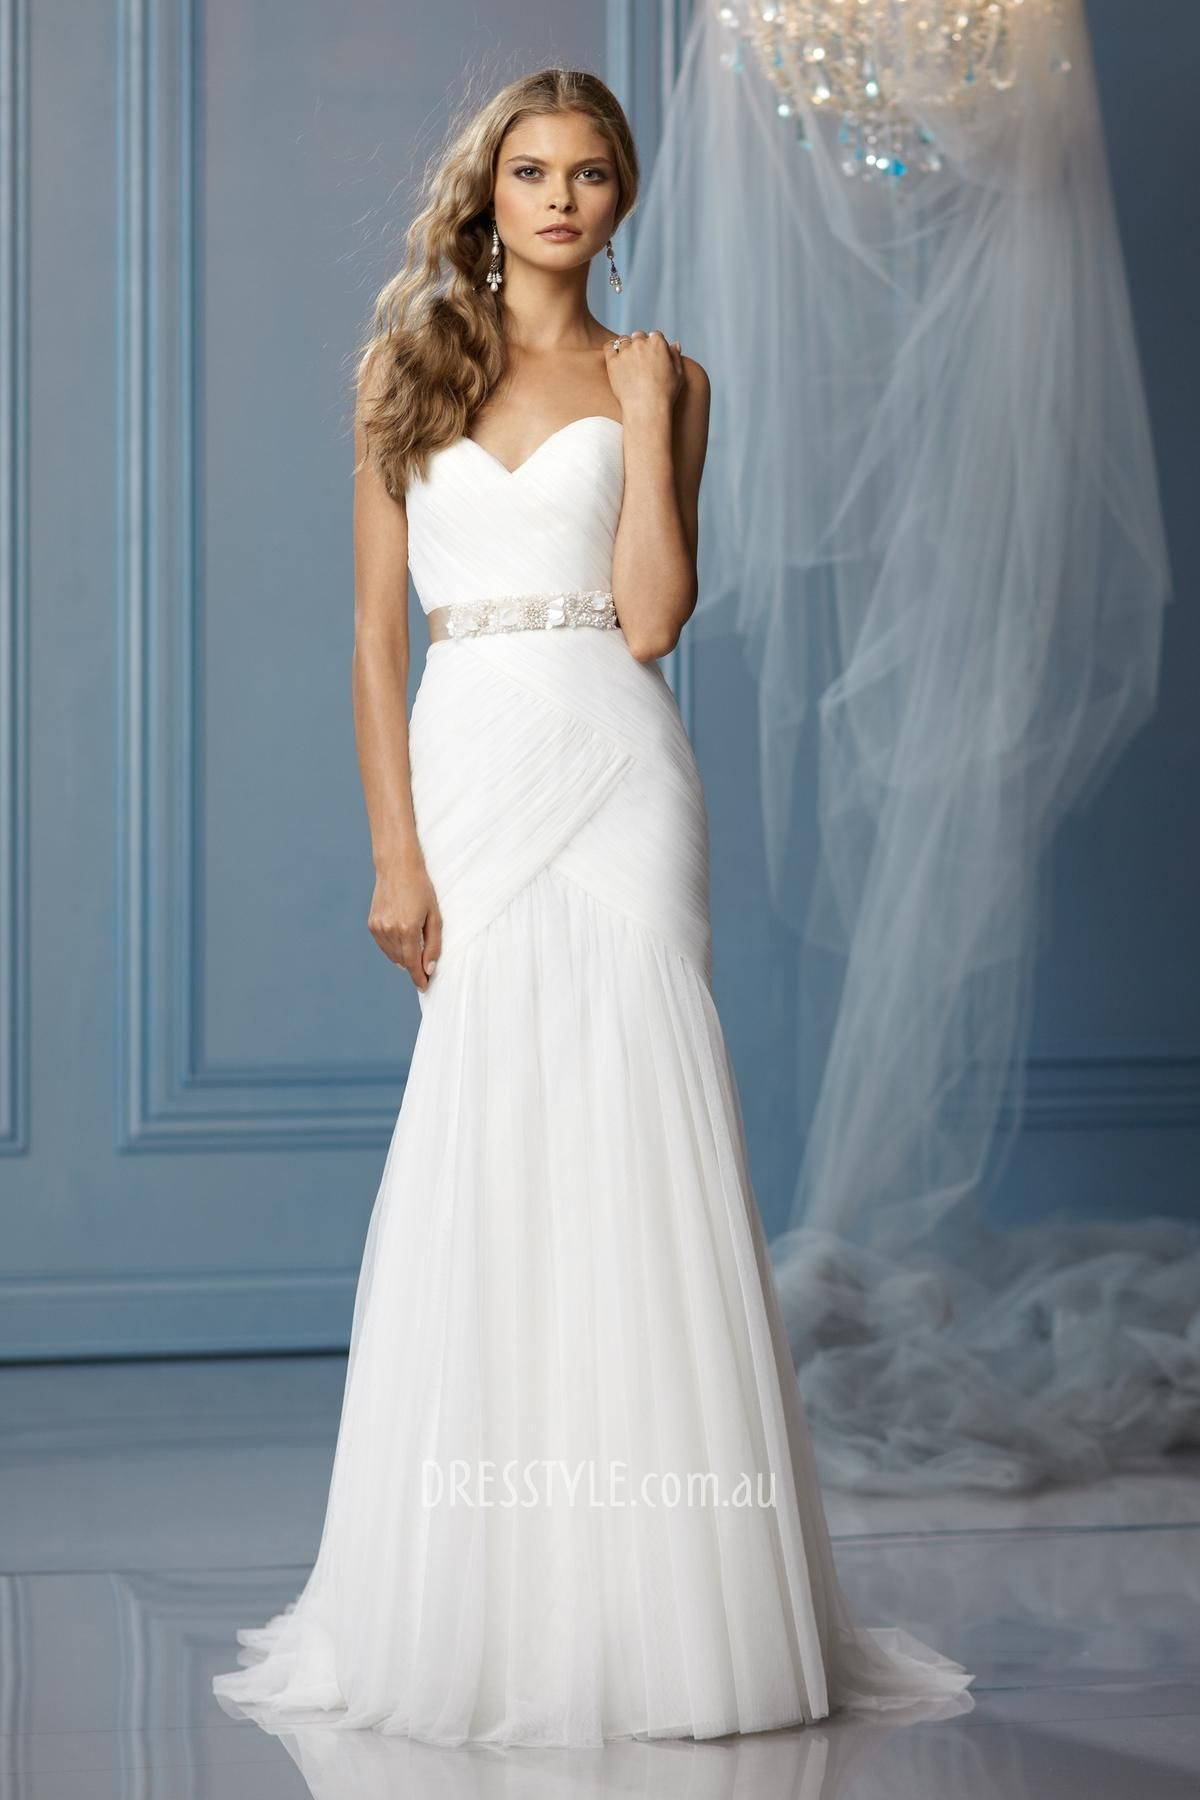 Sweetheart strapless wedding dress  traditional tulle sweetheart strapless slim aline ruched bodice